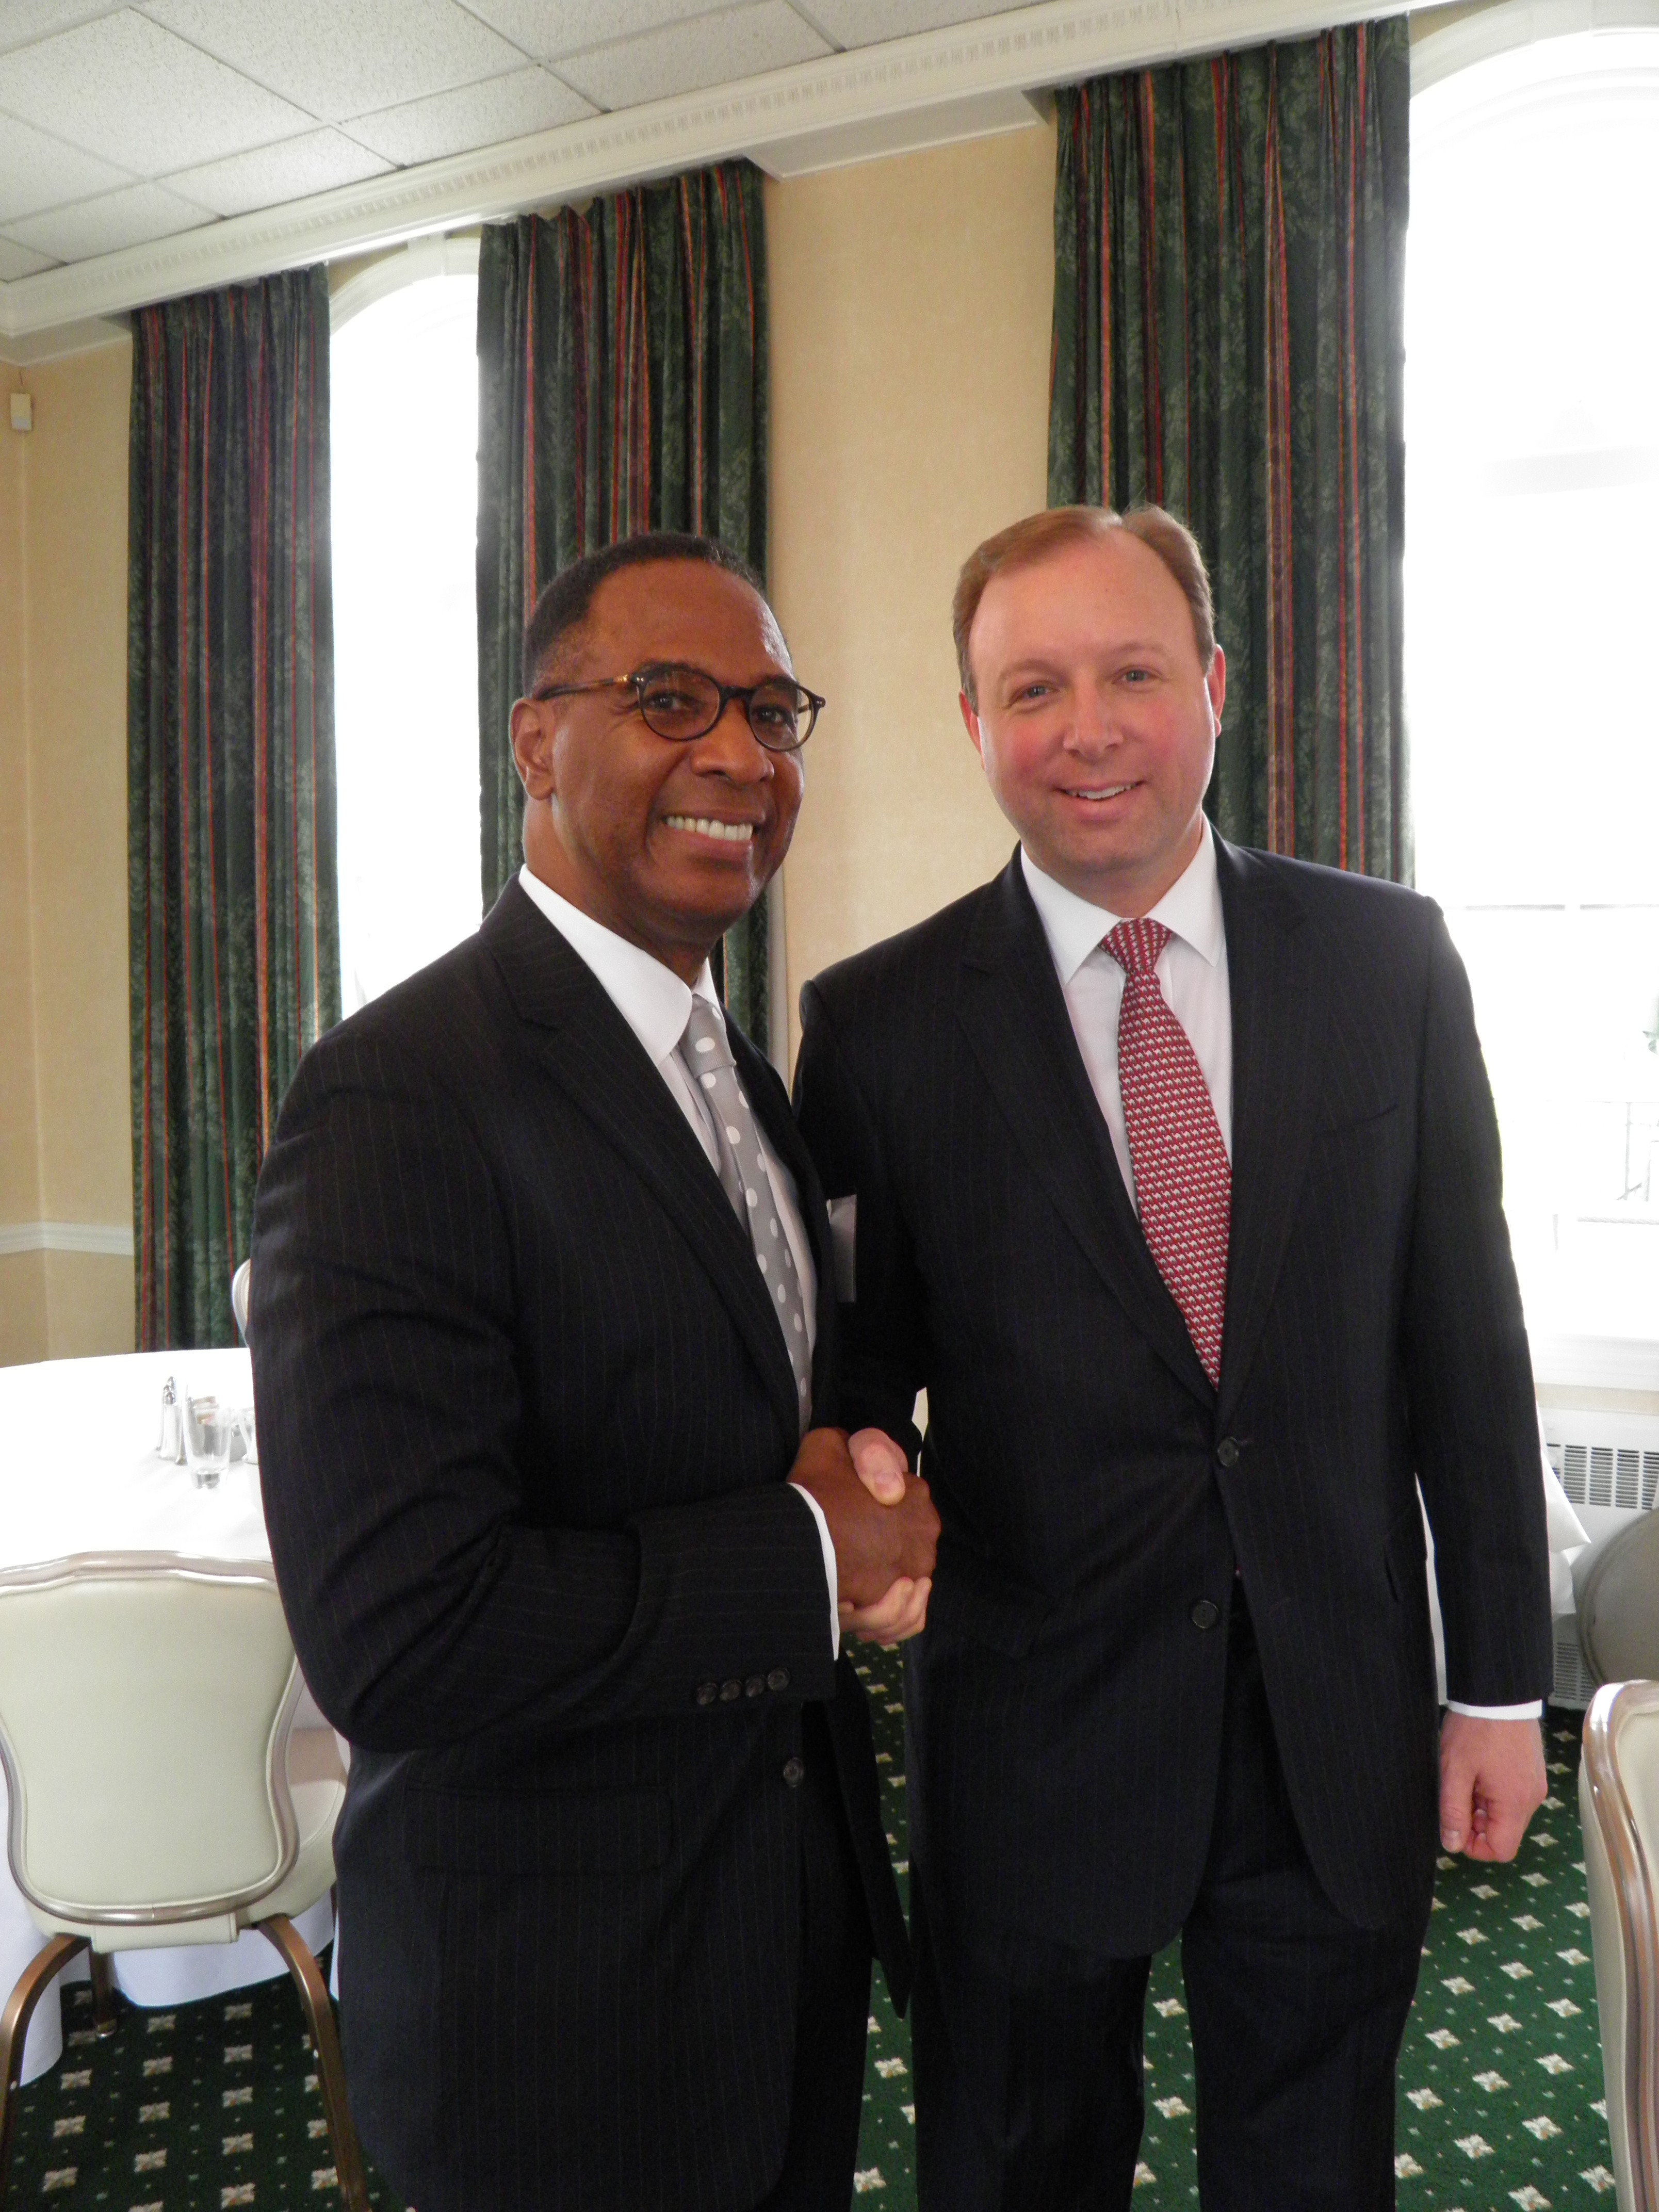 Judge Grant and Marcus Rayner